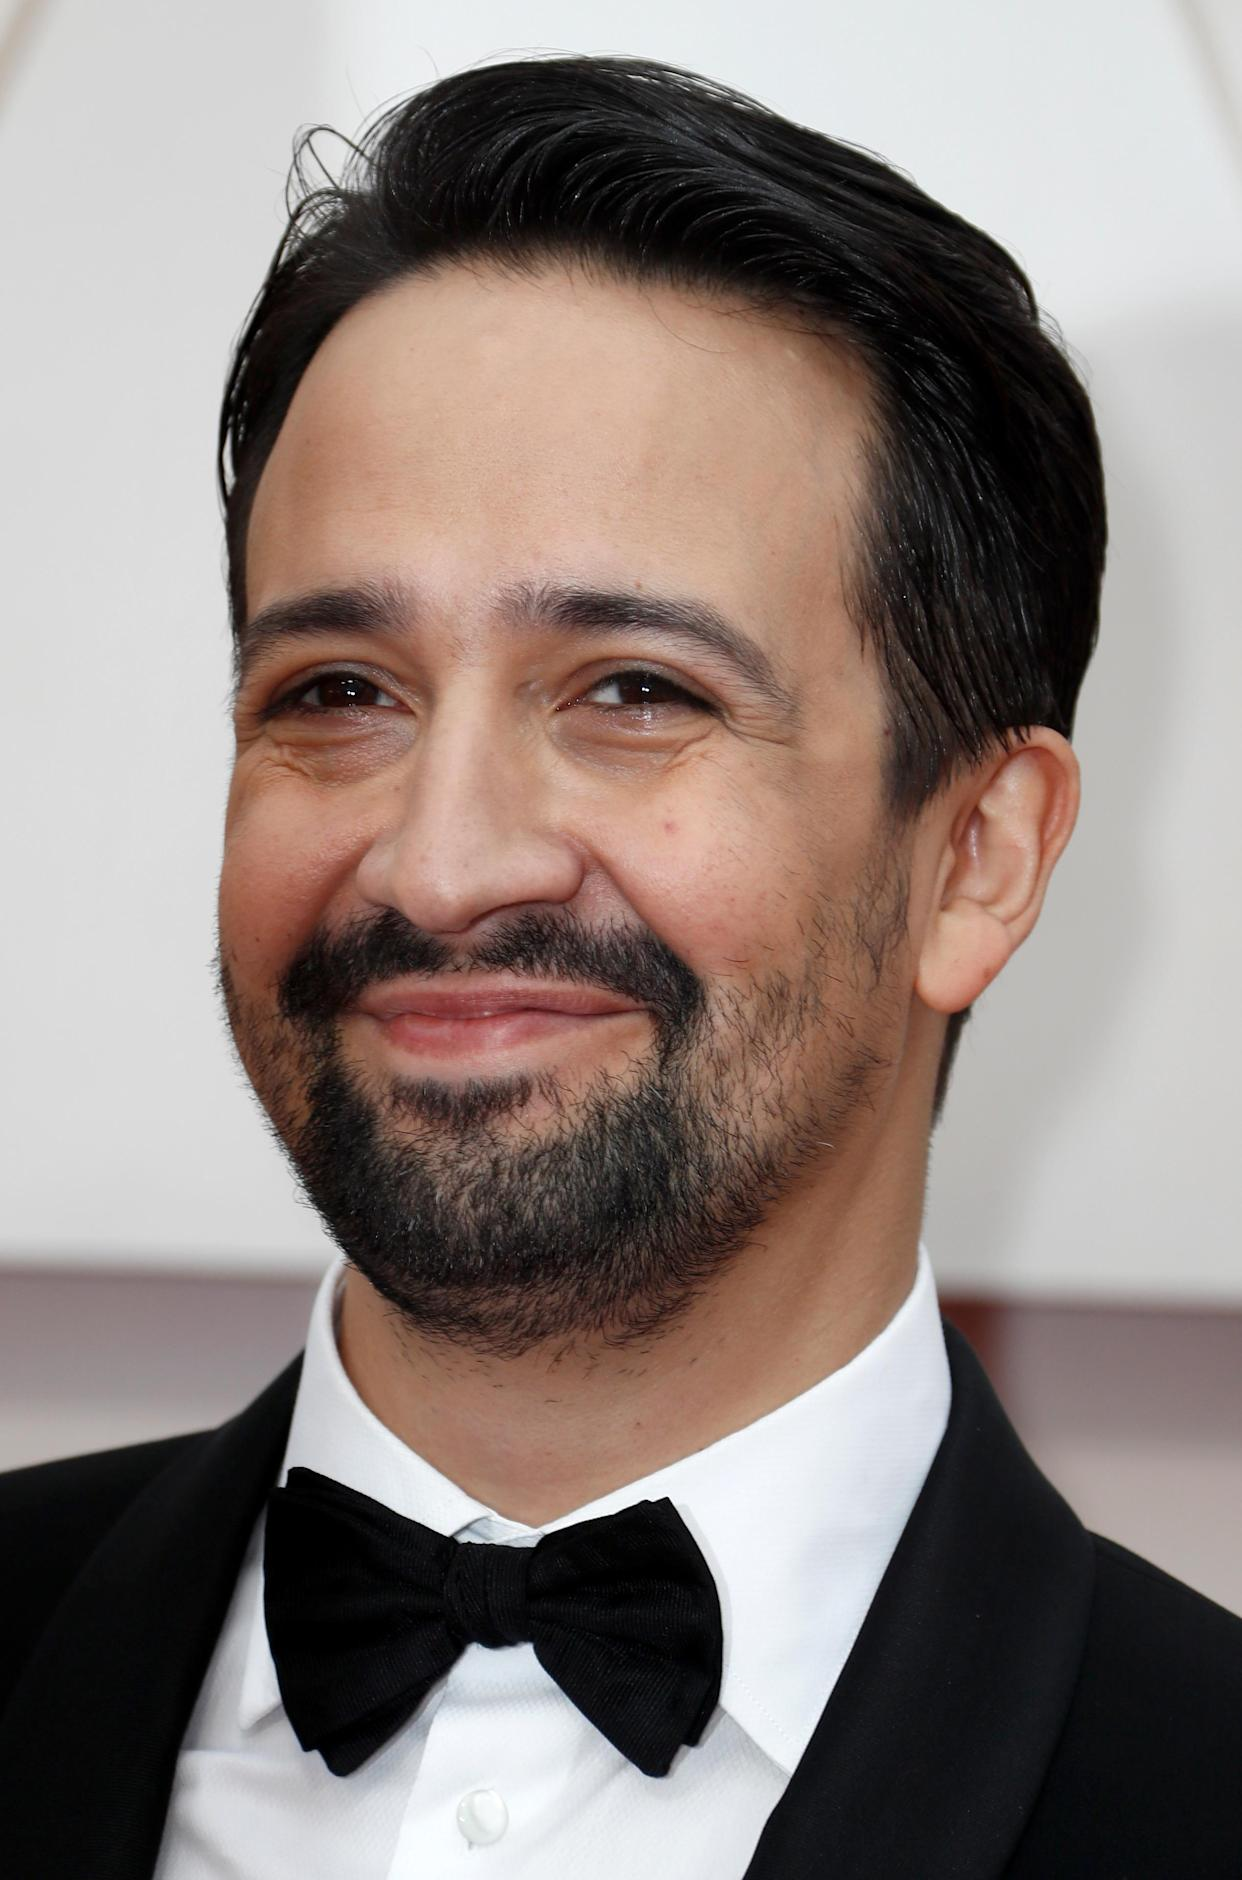 Lin-Manuel Miranda poses on the red carpet during the Oscars arrivals at the 92nd Academy Awards in Hollywood, Los Angeles, California, U.S., February 9, 2020. REUTERS/Eric Gaillard